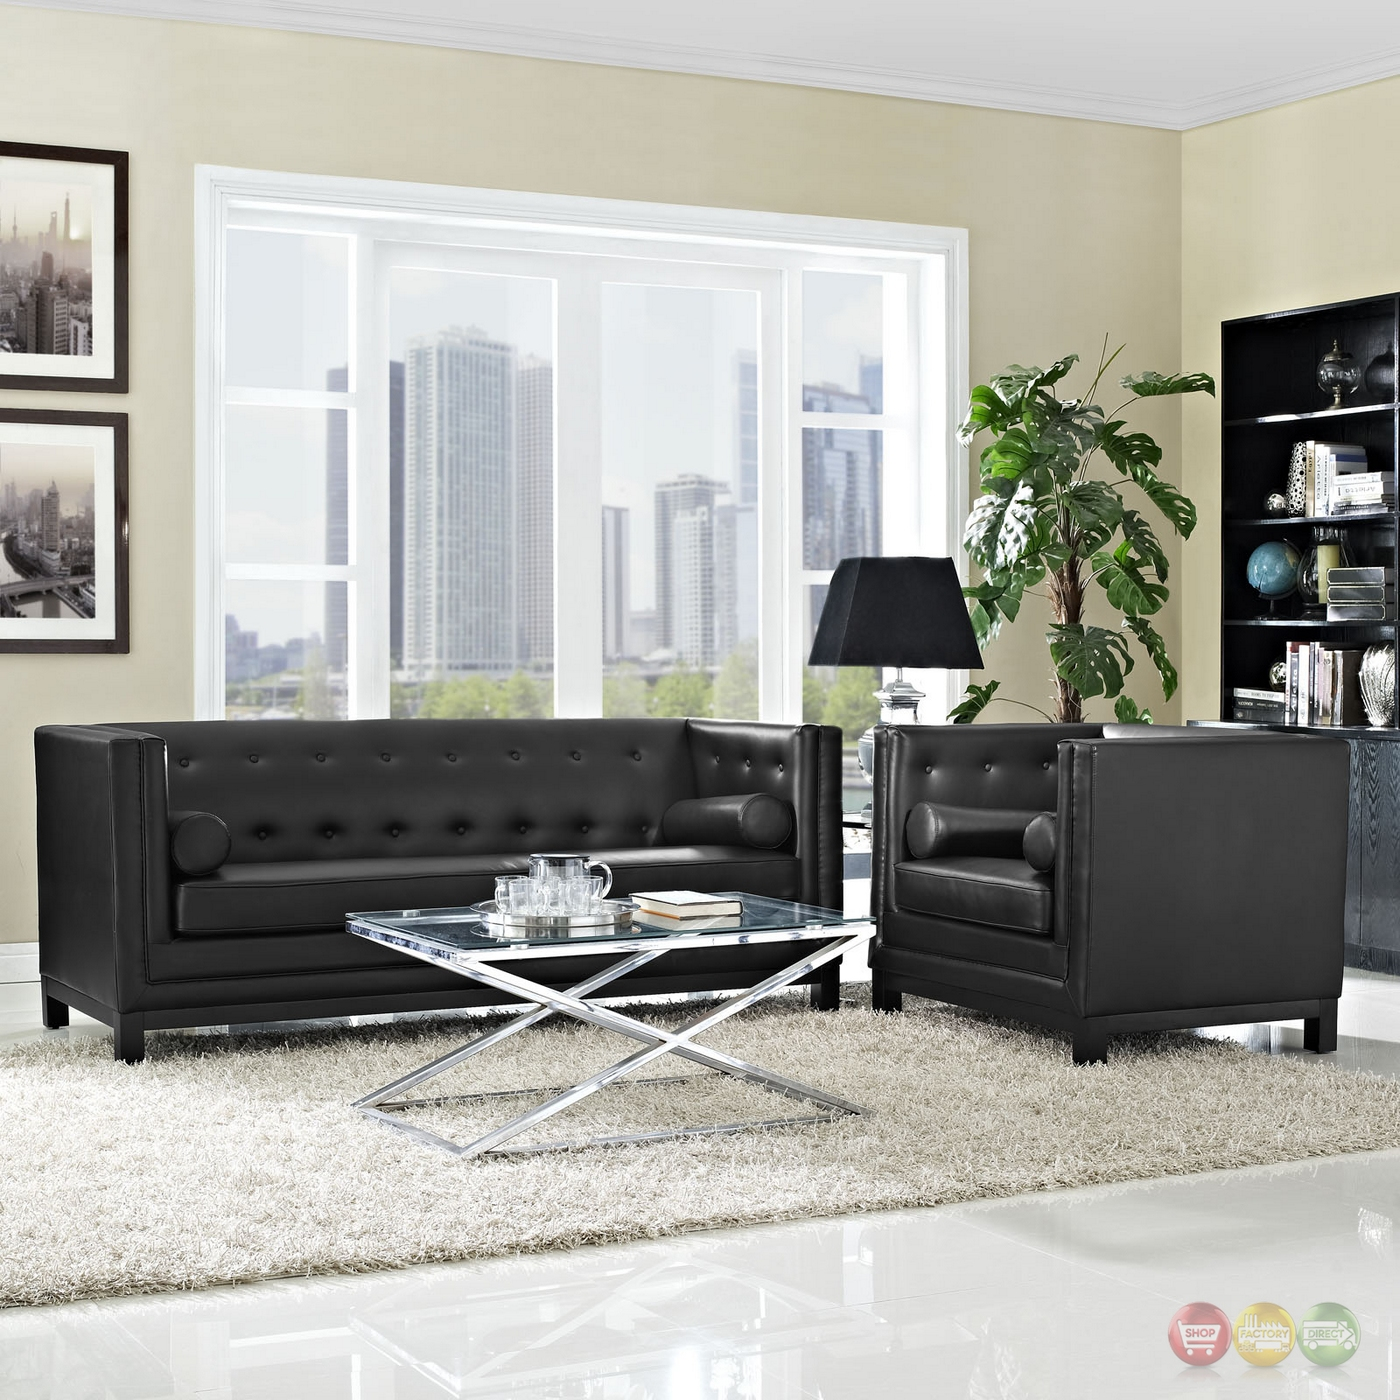 Imperial contemporary 2pc button tufted leather living room set black